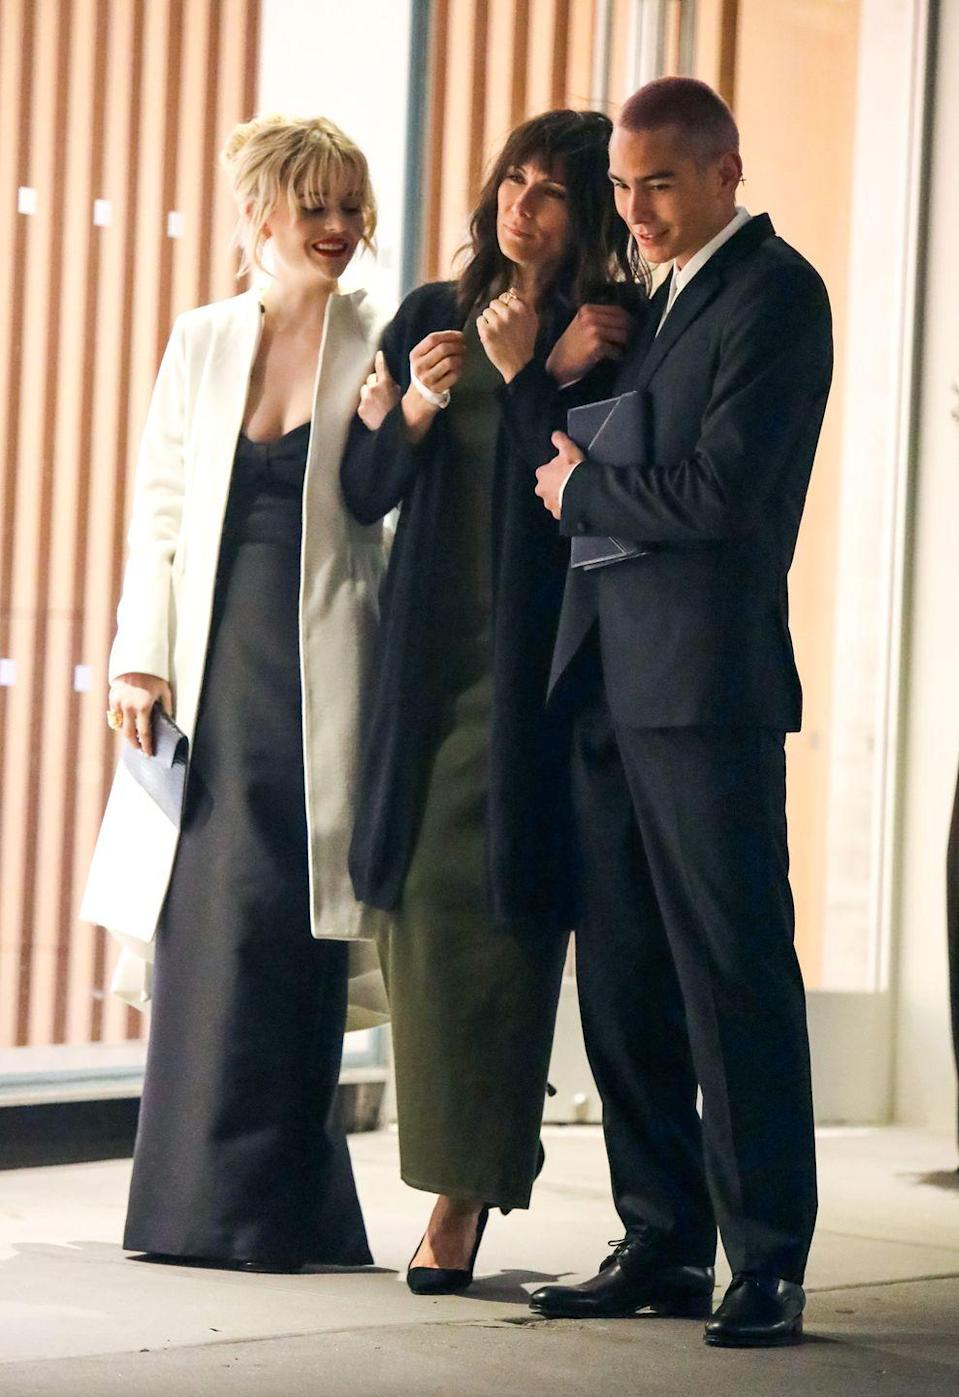 <p>Looks like Laura Benanti is in the show! The seasoned Broadway and TV actress is seen filming with Emily Alyn Lind and Evan Mock. </p>